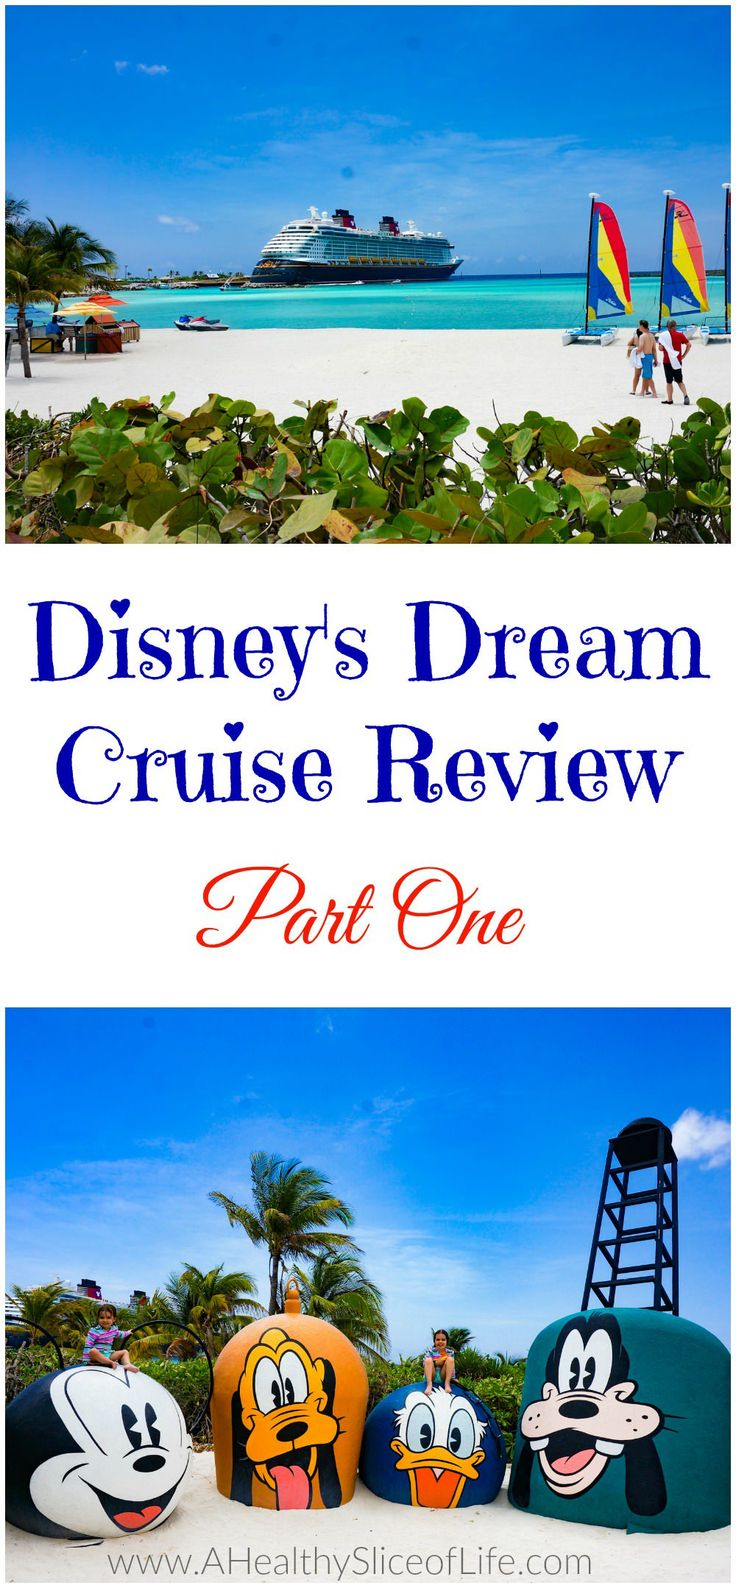 A detailed review including tips for the Disney Dream cruise. We went on a 4 day/3 night cruise vacation to the Bahamas aboard the Dream!